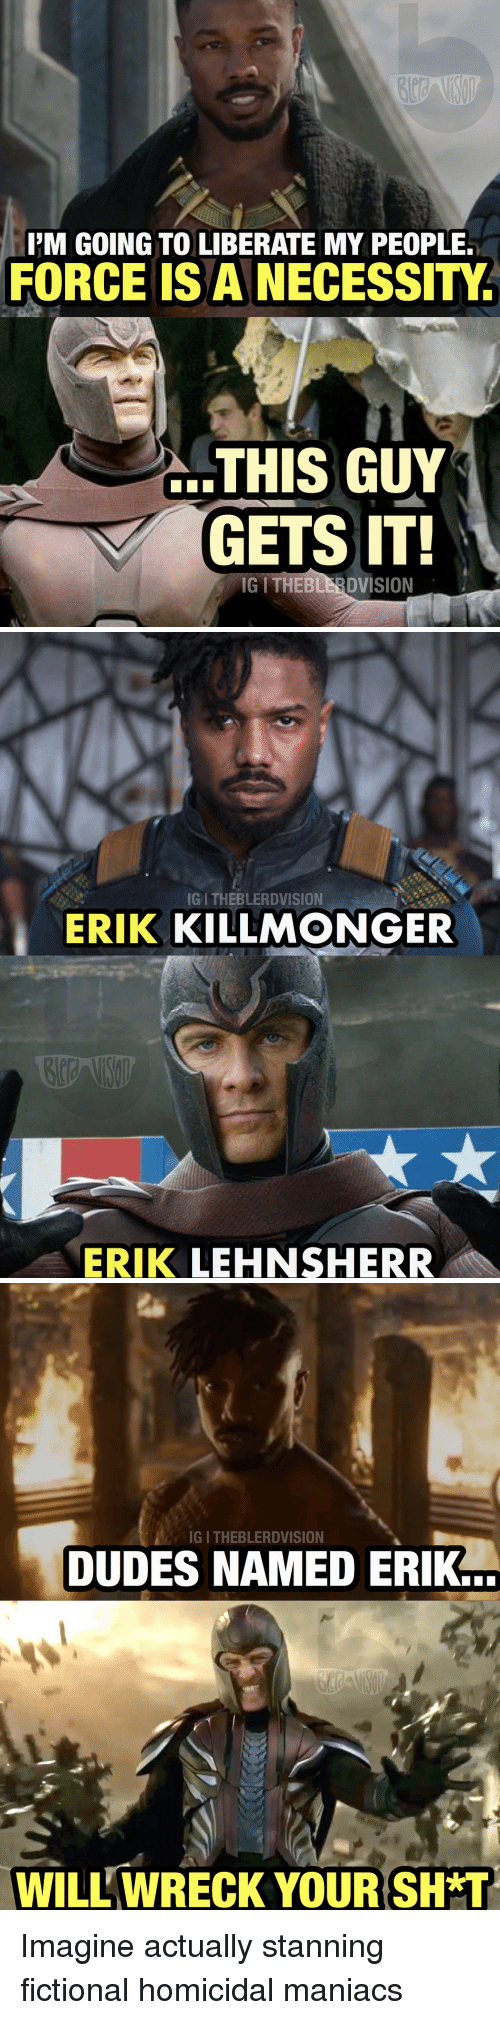 Stanning: PM GOING TO LIBERATE MY PEOPLE.  FORCE IS A NECESSITY  THIS GUY  GETS IT!  IG I THEBLERDVISION   IG I THEBLERDVISION  ERIK KILLMONGER  ERIK LEHNSHERR   IG I THEBLERDVISION  DUDES NAMED ERIK  WILL WRECK YOUR SH T <p>Imagine actually stanning fictional homicidal maniacs</p>